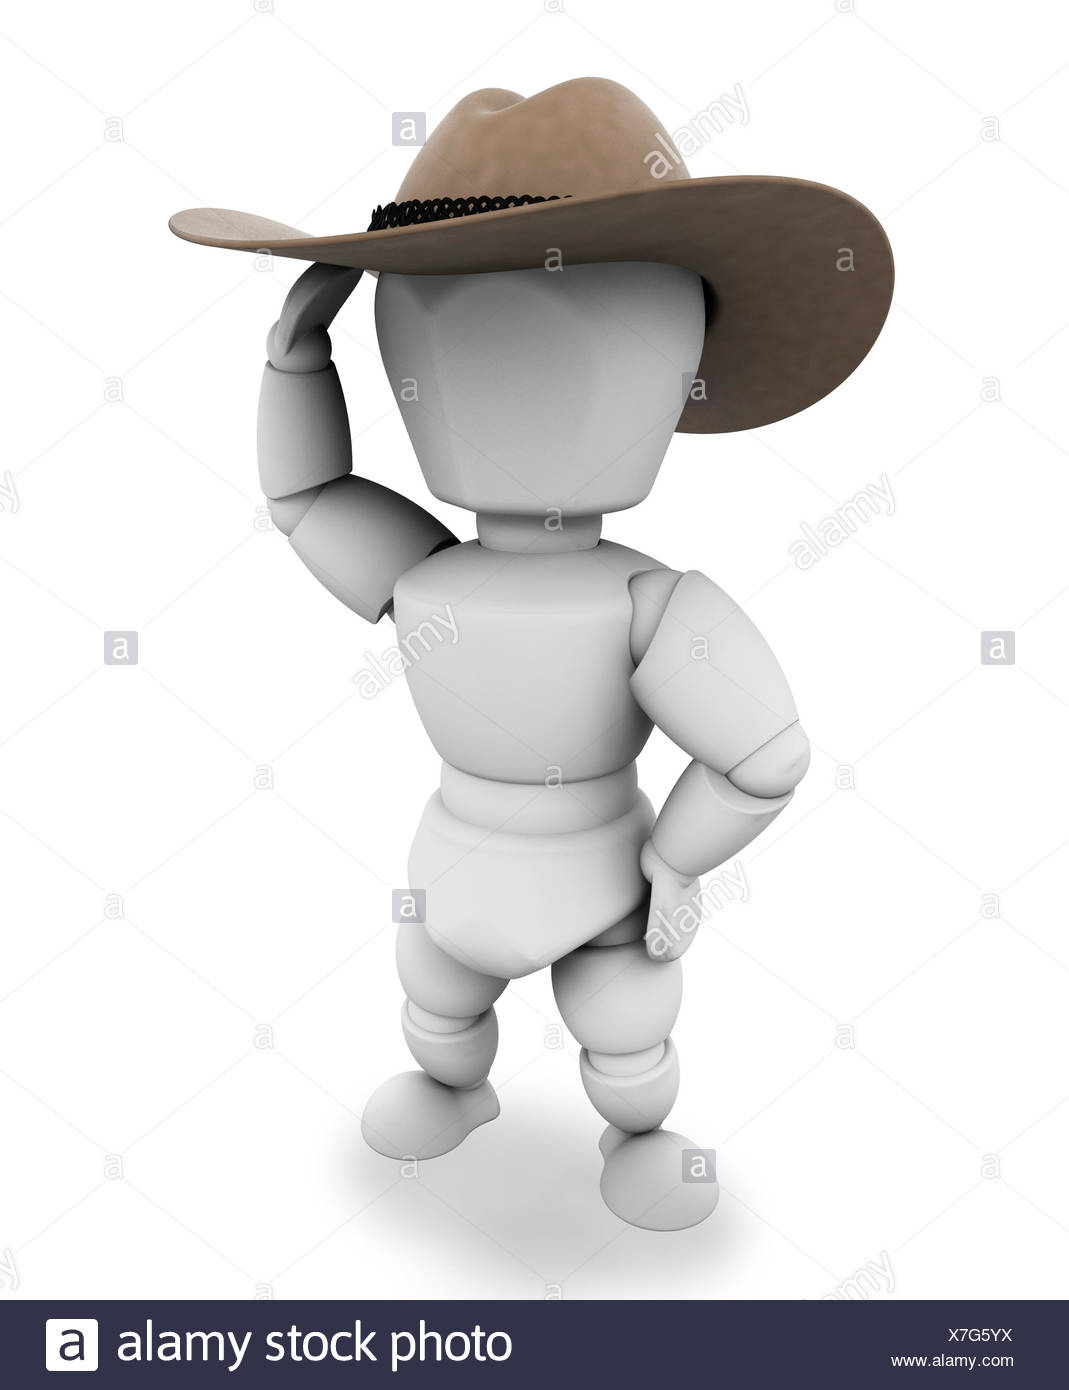 93edf84faa2 3D render of a cowboy with stetson hat Stock Photo  280024414 - Alamy